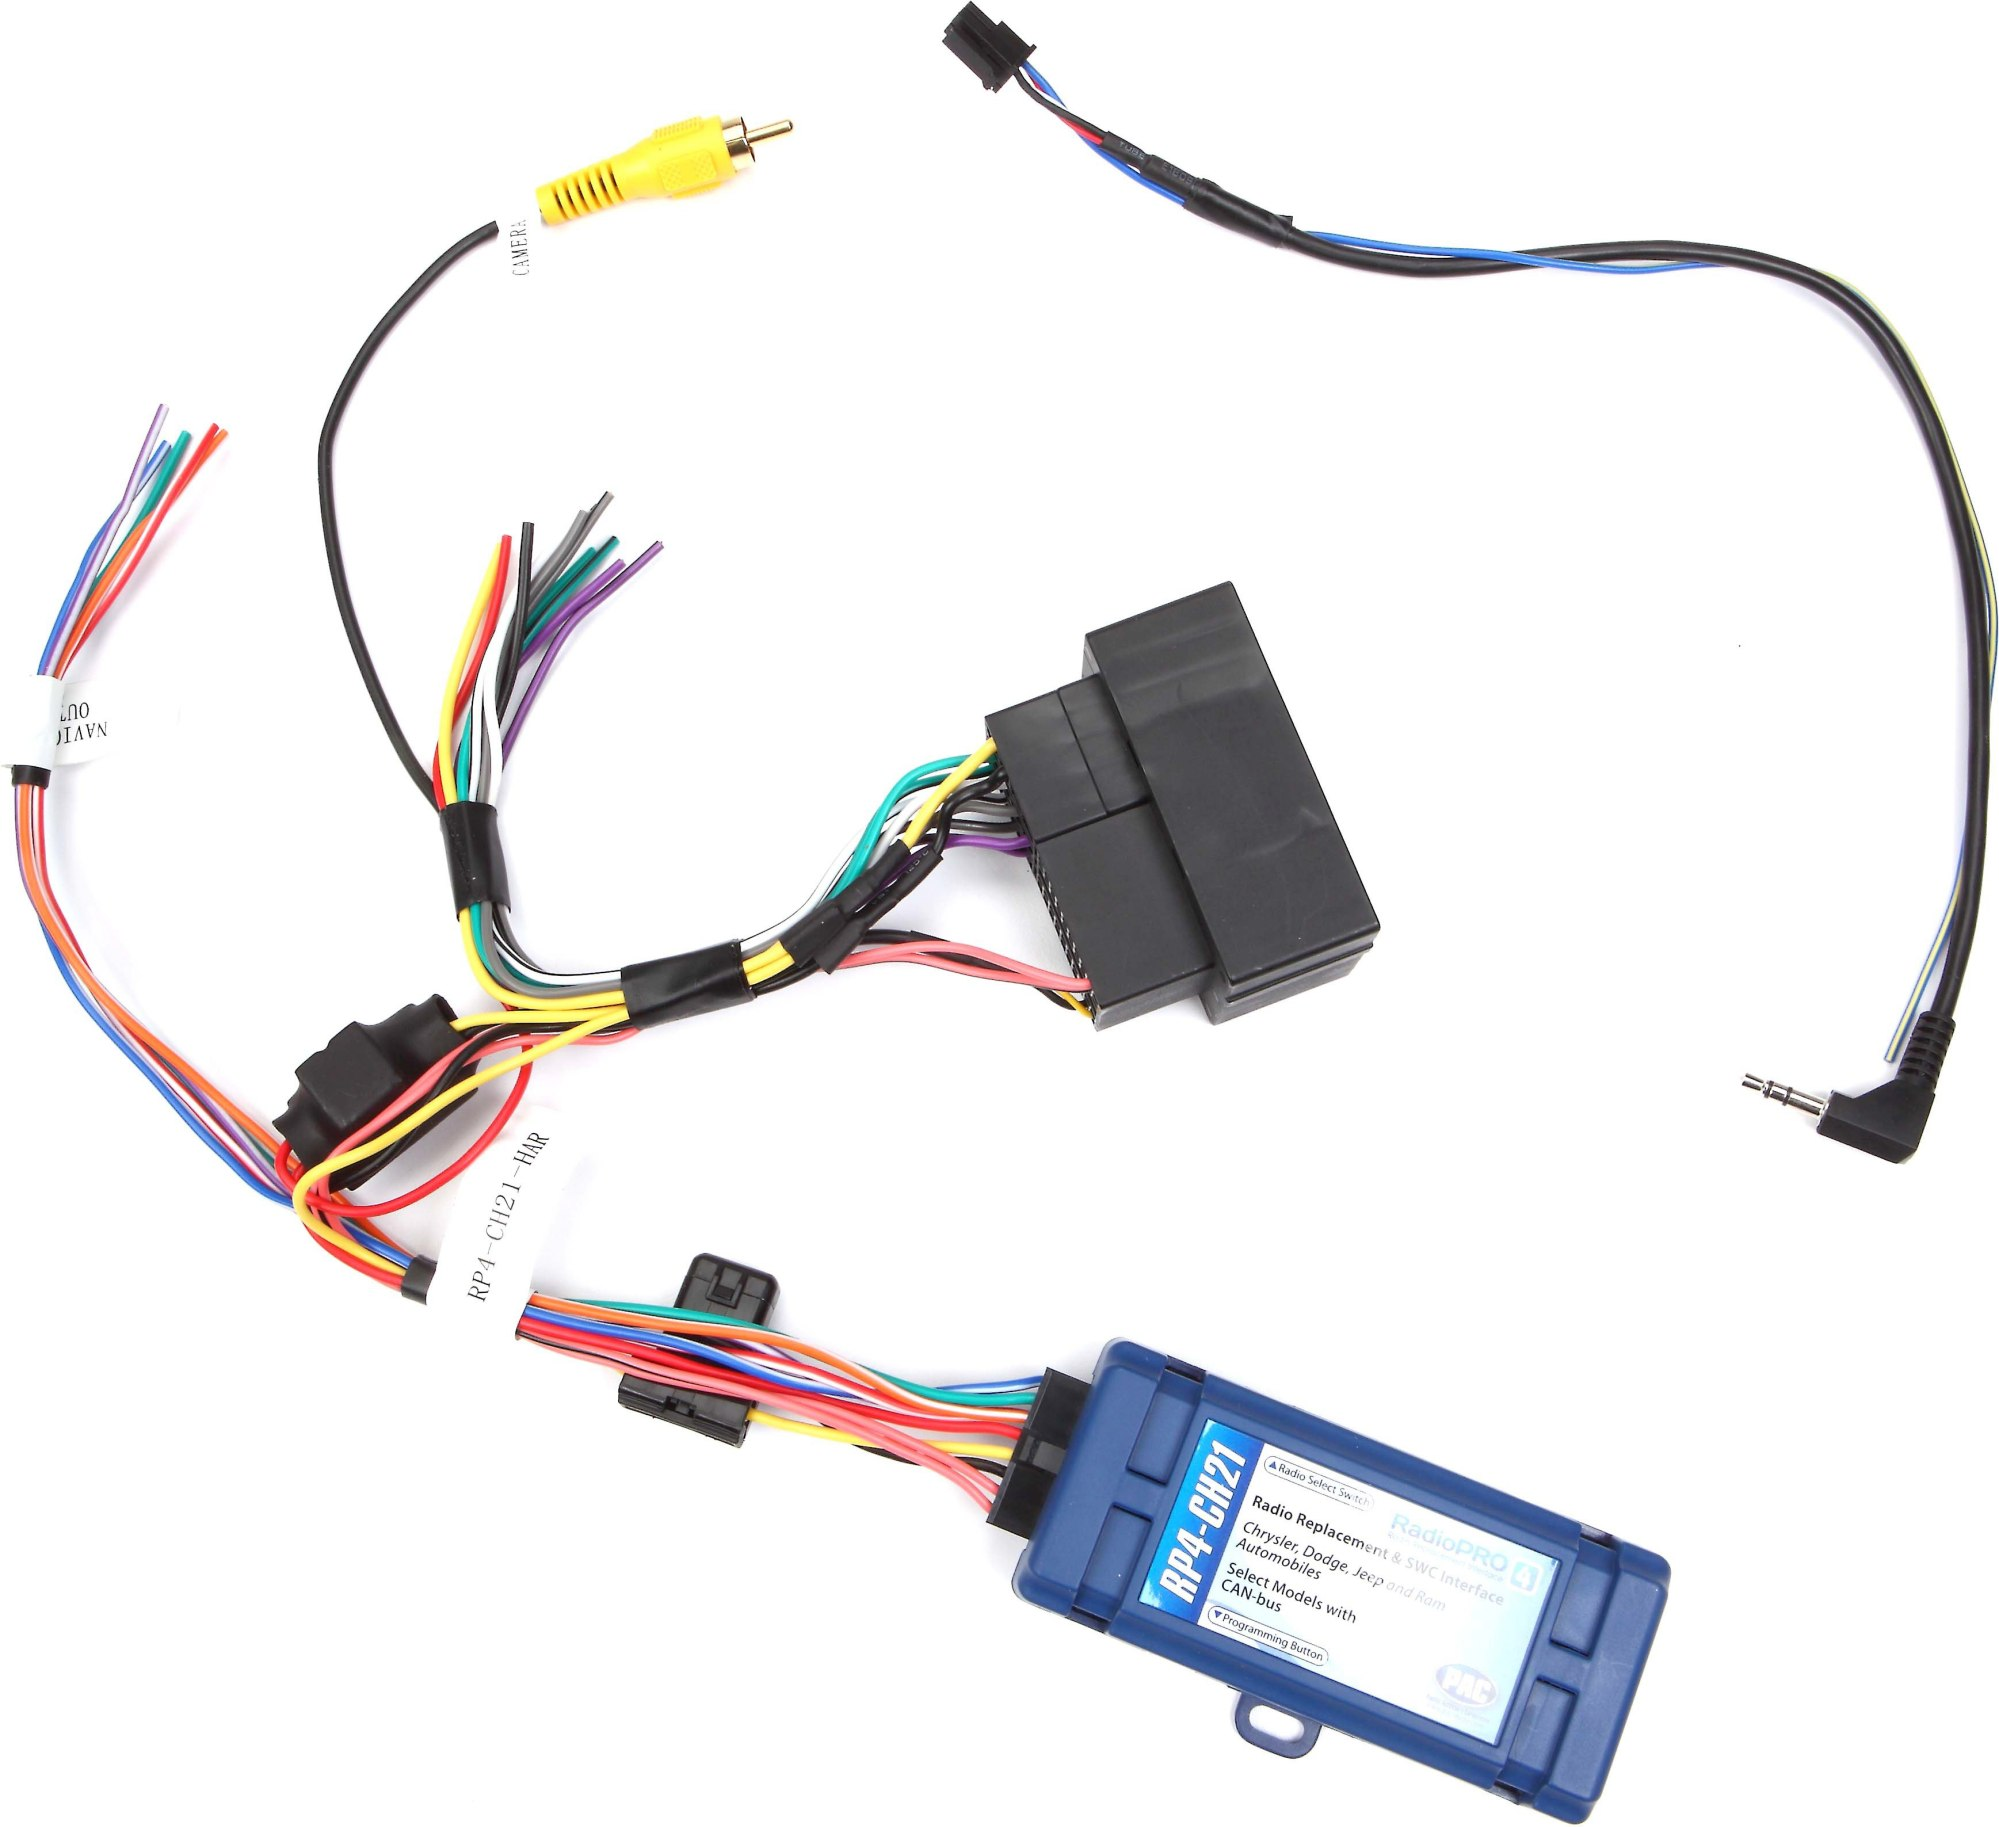 hight resolution of pac rp4 ch21 wiring interface connect a new car stereo and retain factory steering wheel audio controls driver info centre and amp in select 2013 up dodge